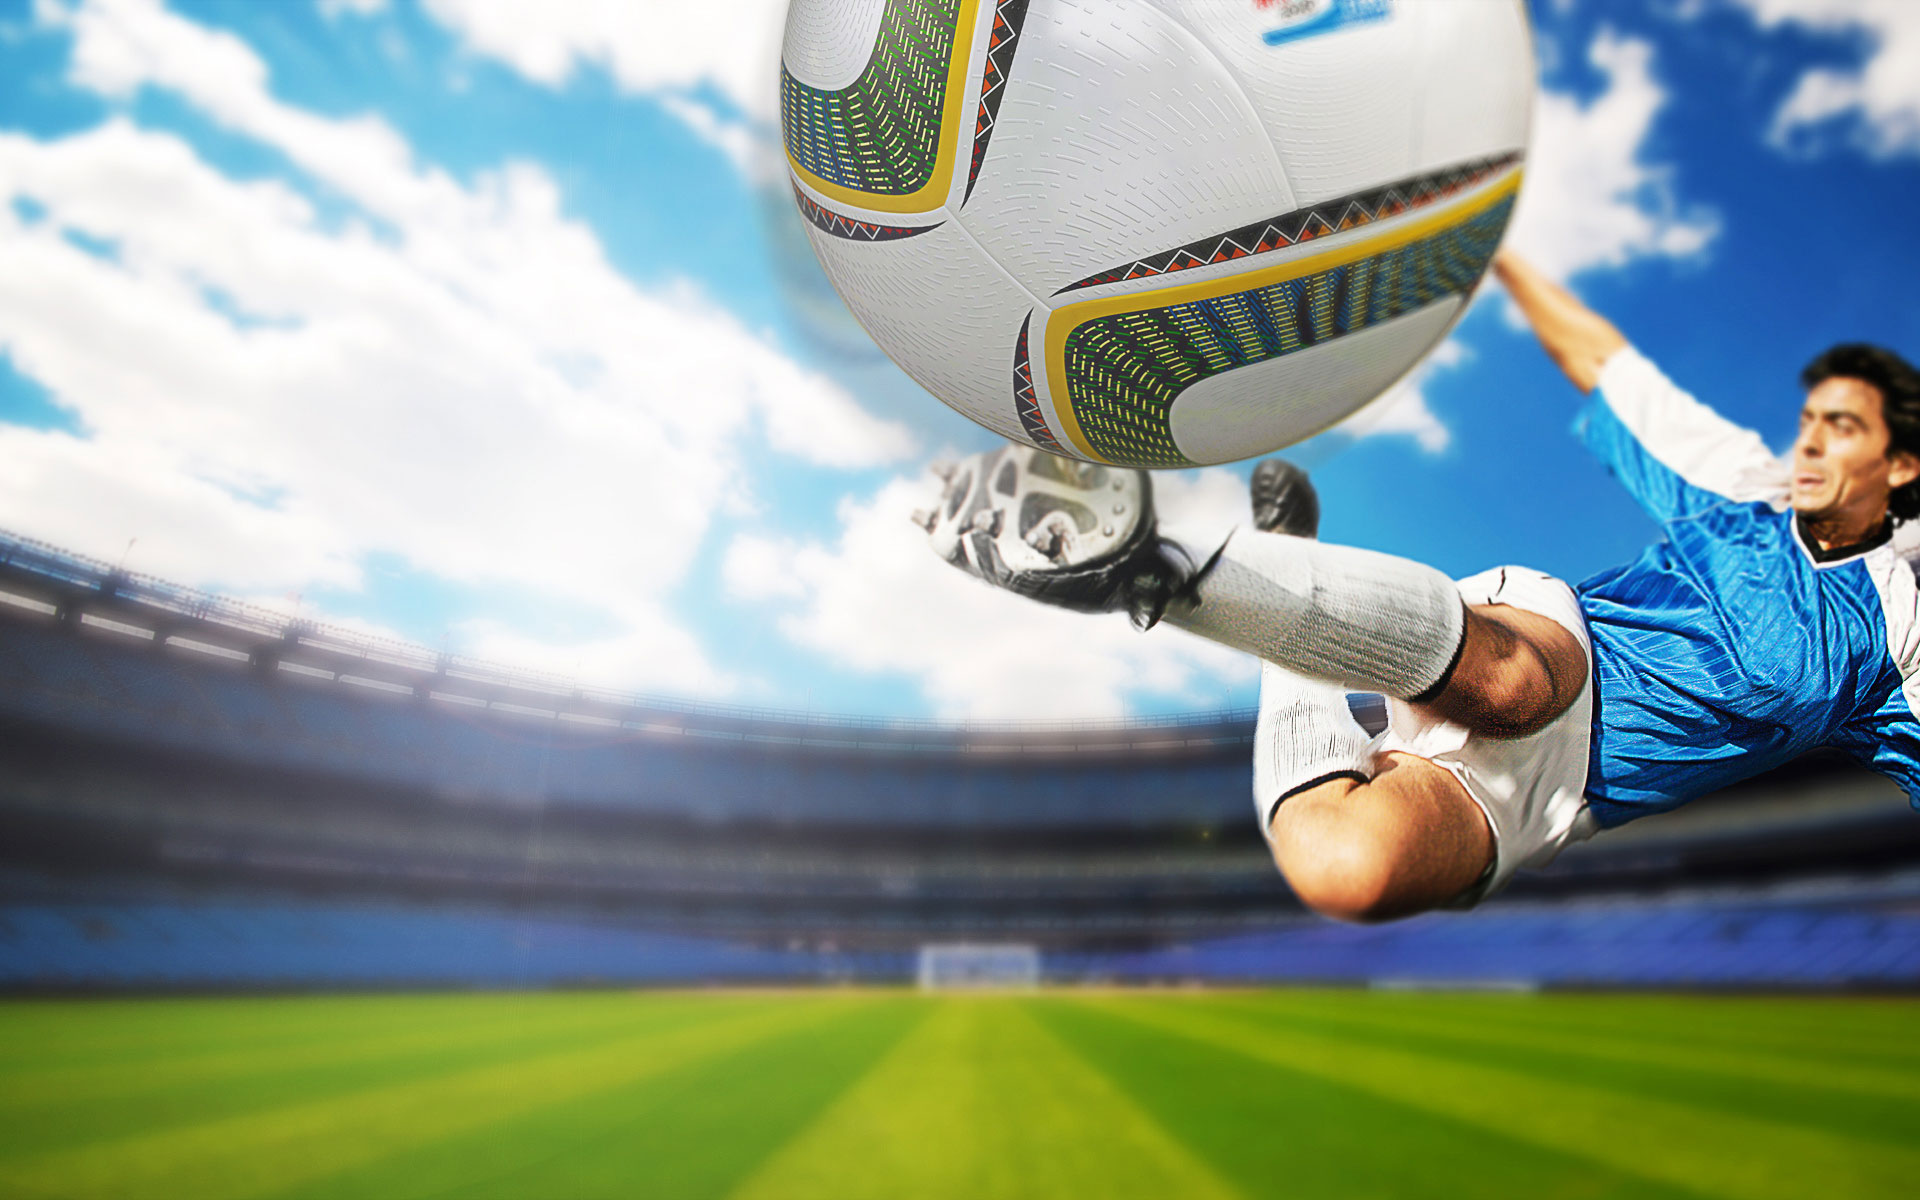 Free Sports Wallpapers